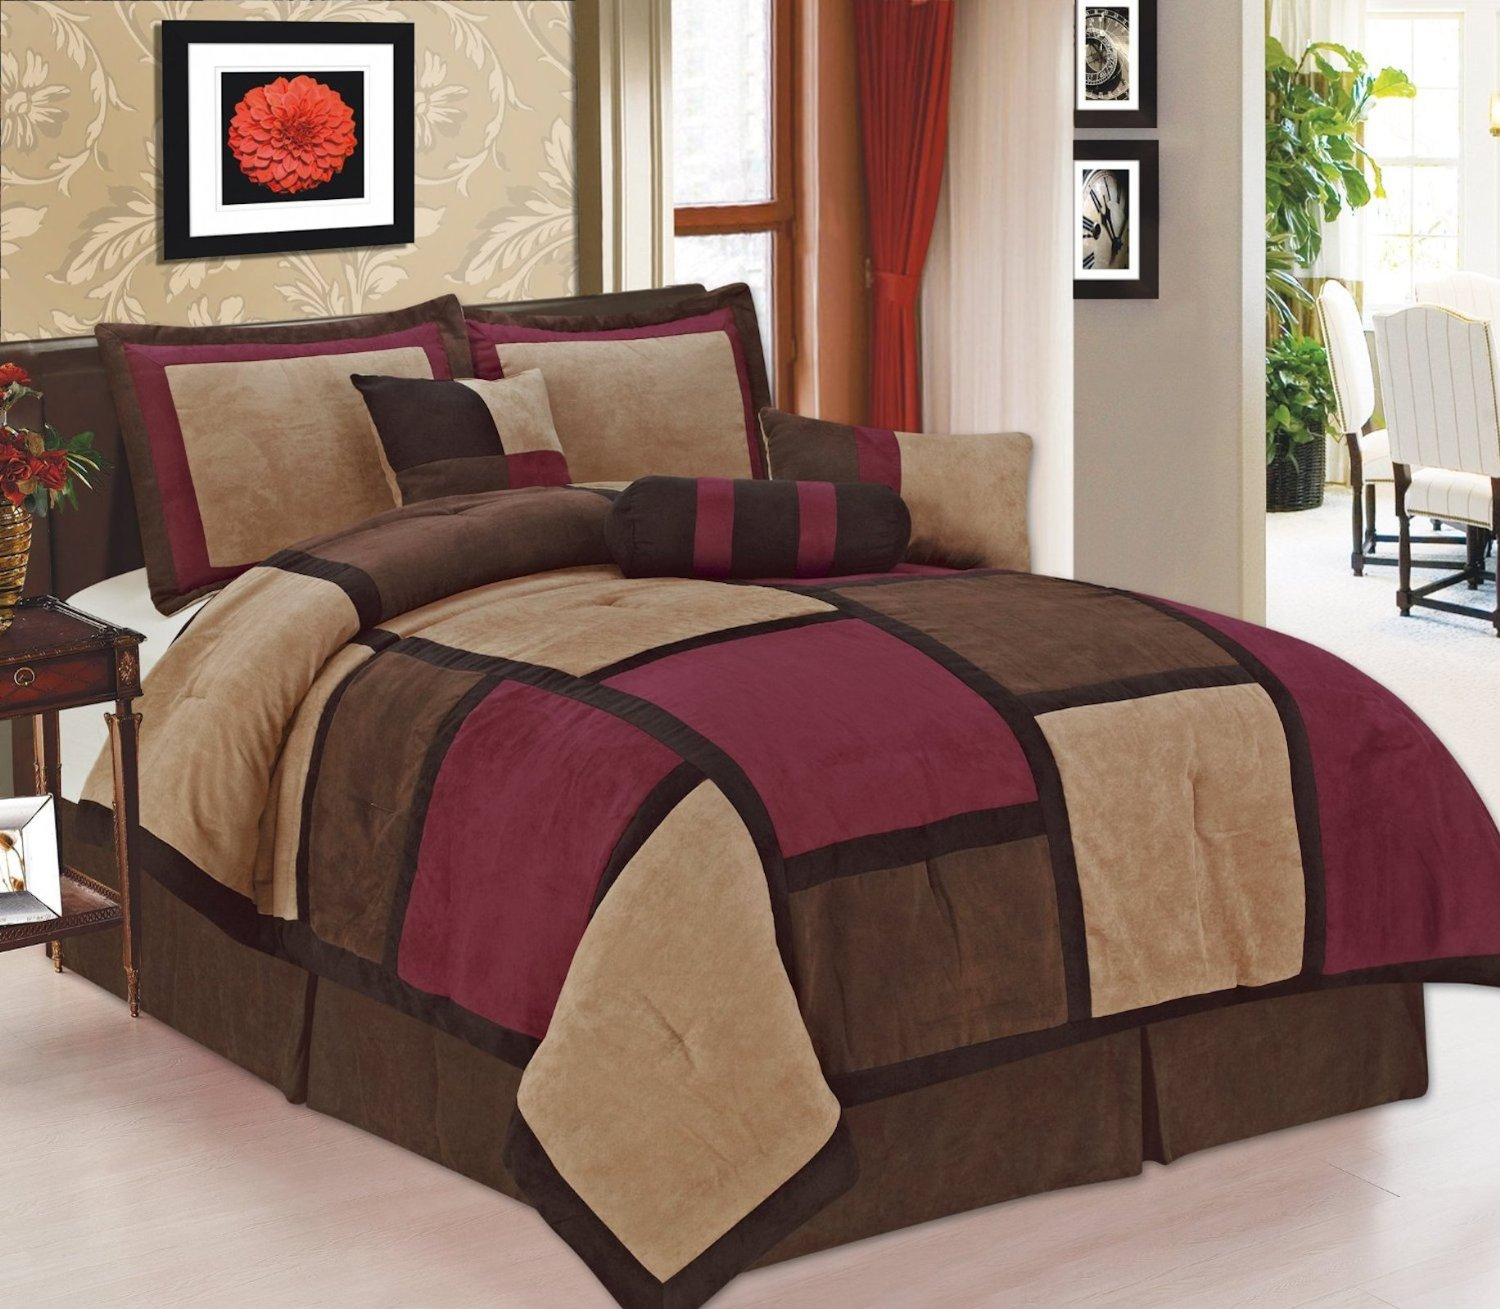 Legacy Decor 7 Piece Brown Burgundy & Beige Micro Suede Patchwork Comforter Bed-in-a-bag Set Washable Queen Size